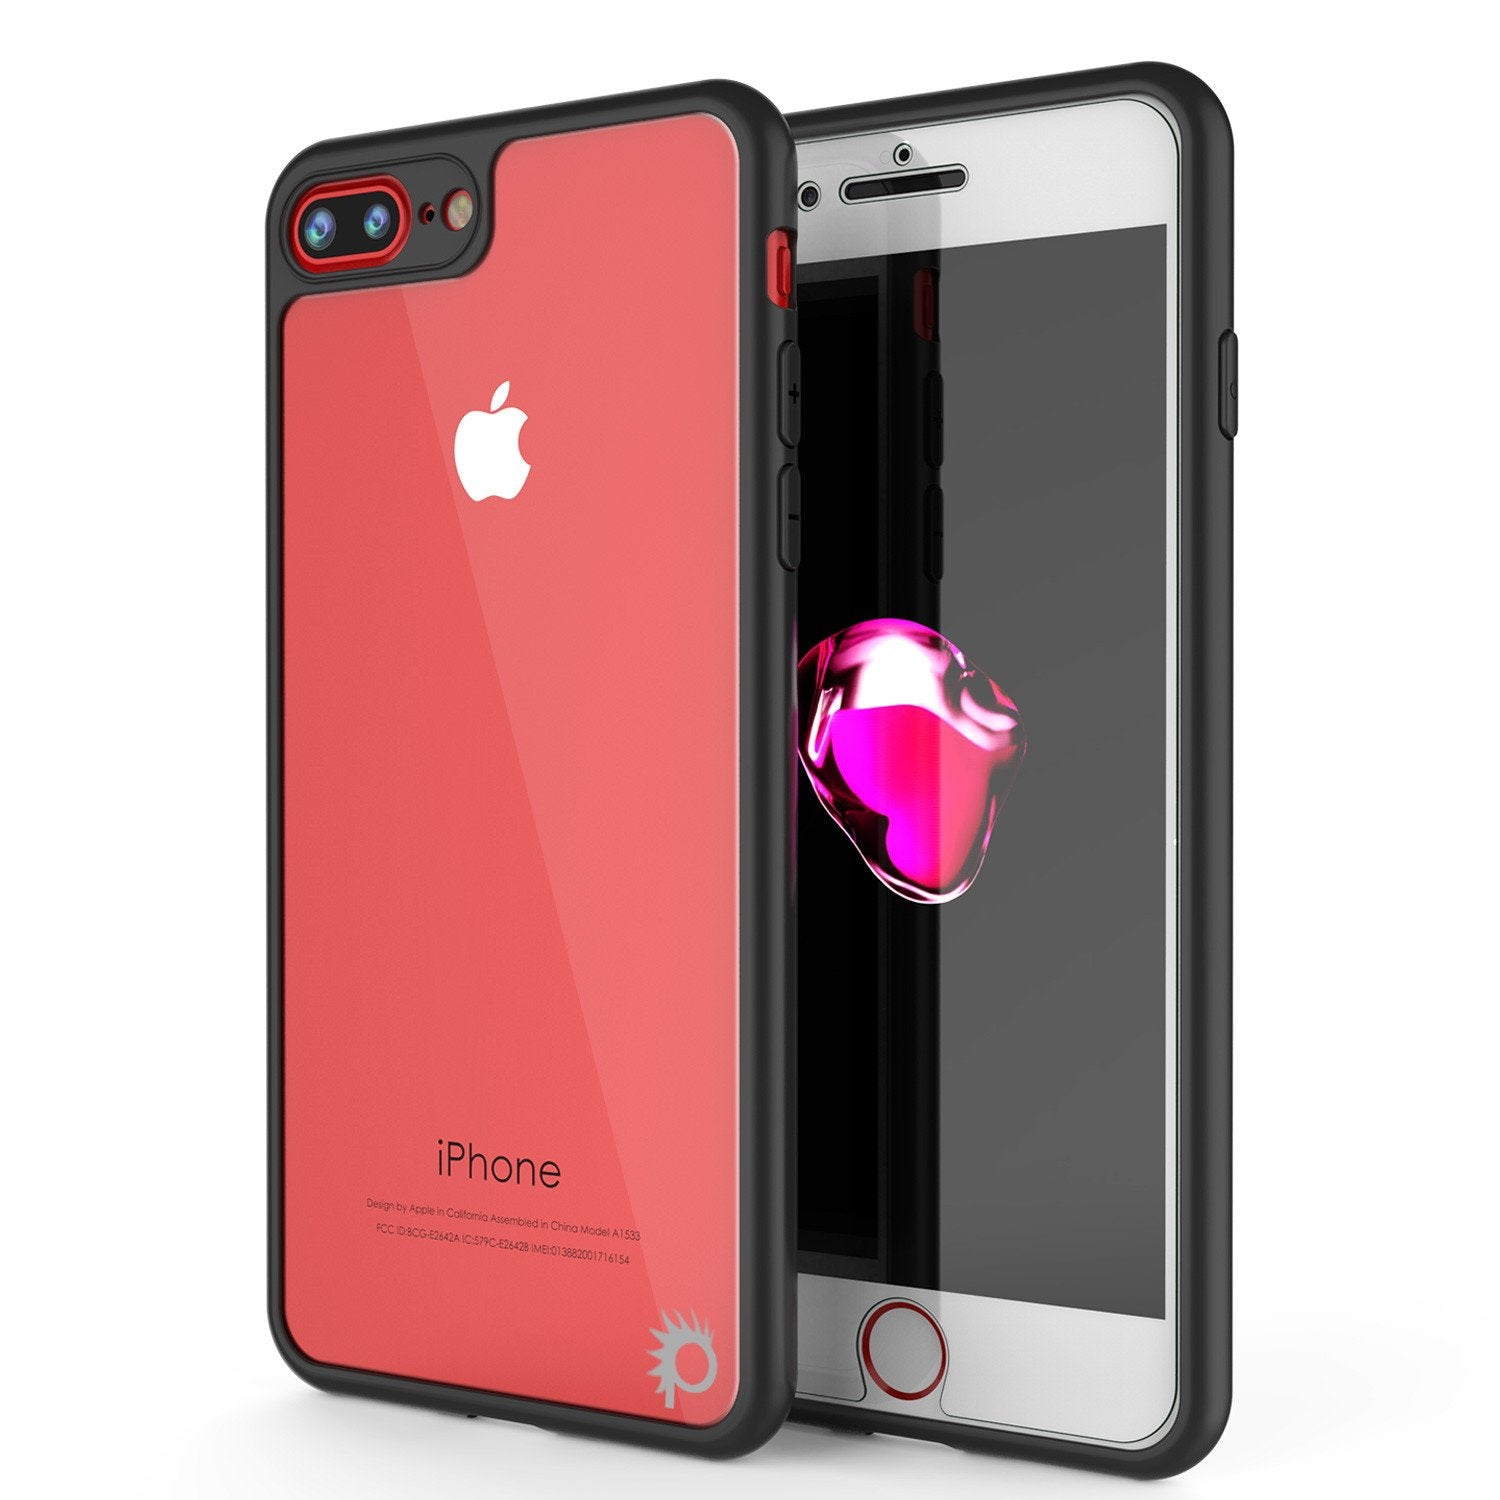 finest selection 31a11 ca1df iPhone 8+ Plus Case, Punkcase [MASK Series] [BLACK] Full Body Hybrid Dual  Layer TPU Cover W/ protective Tempered Glass Screen Protector